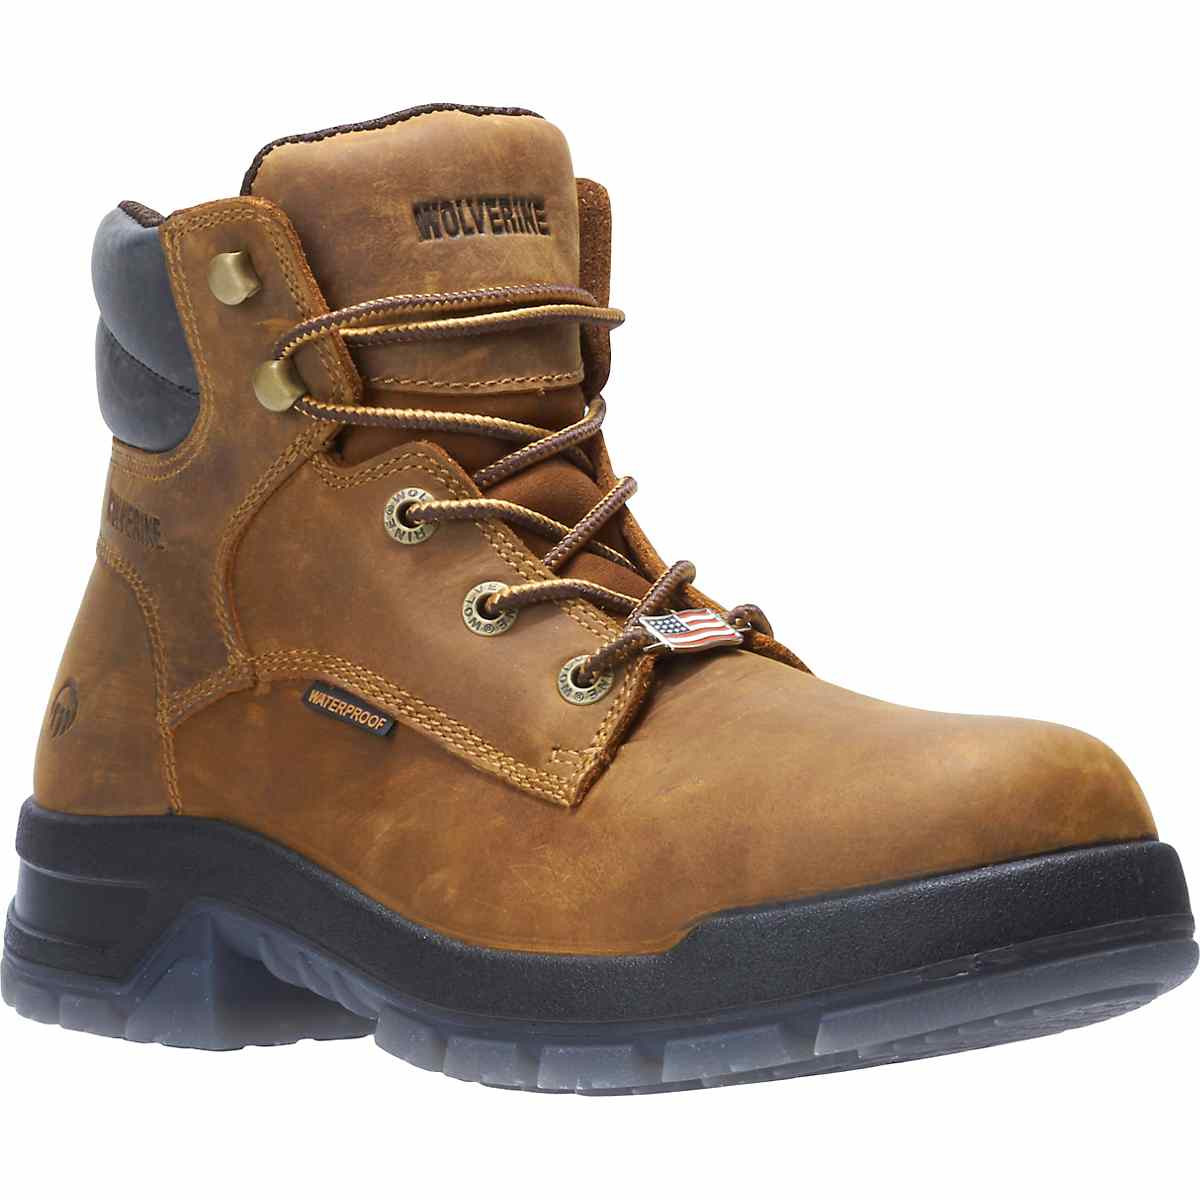 e38ccb3aea2 Ramparts 6 Inch Tan Waterproof Soft Toe Boot 190019